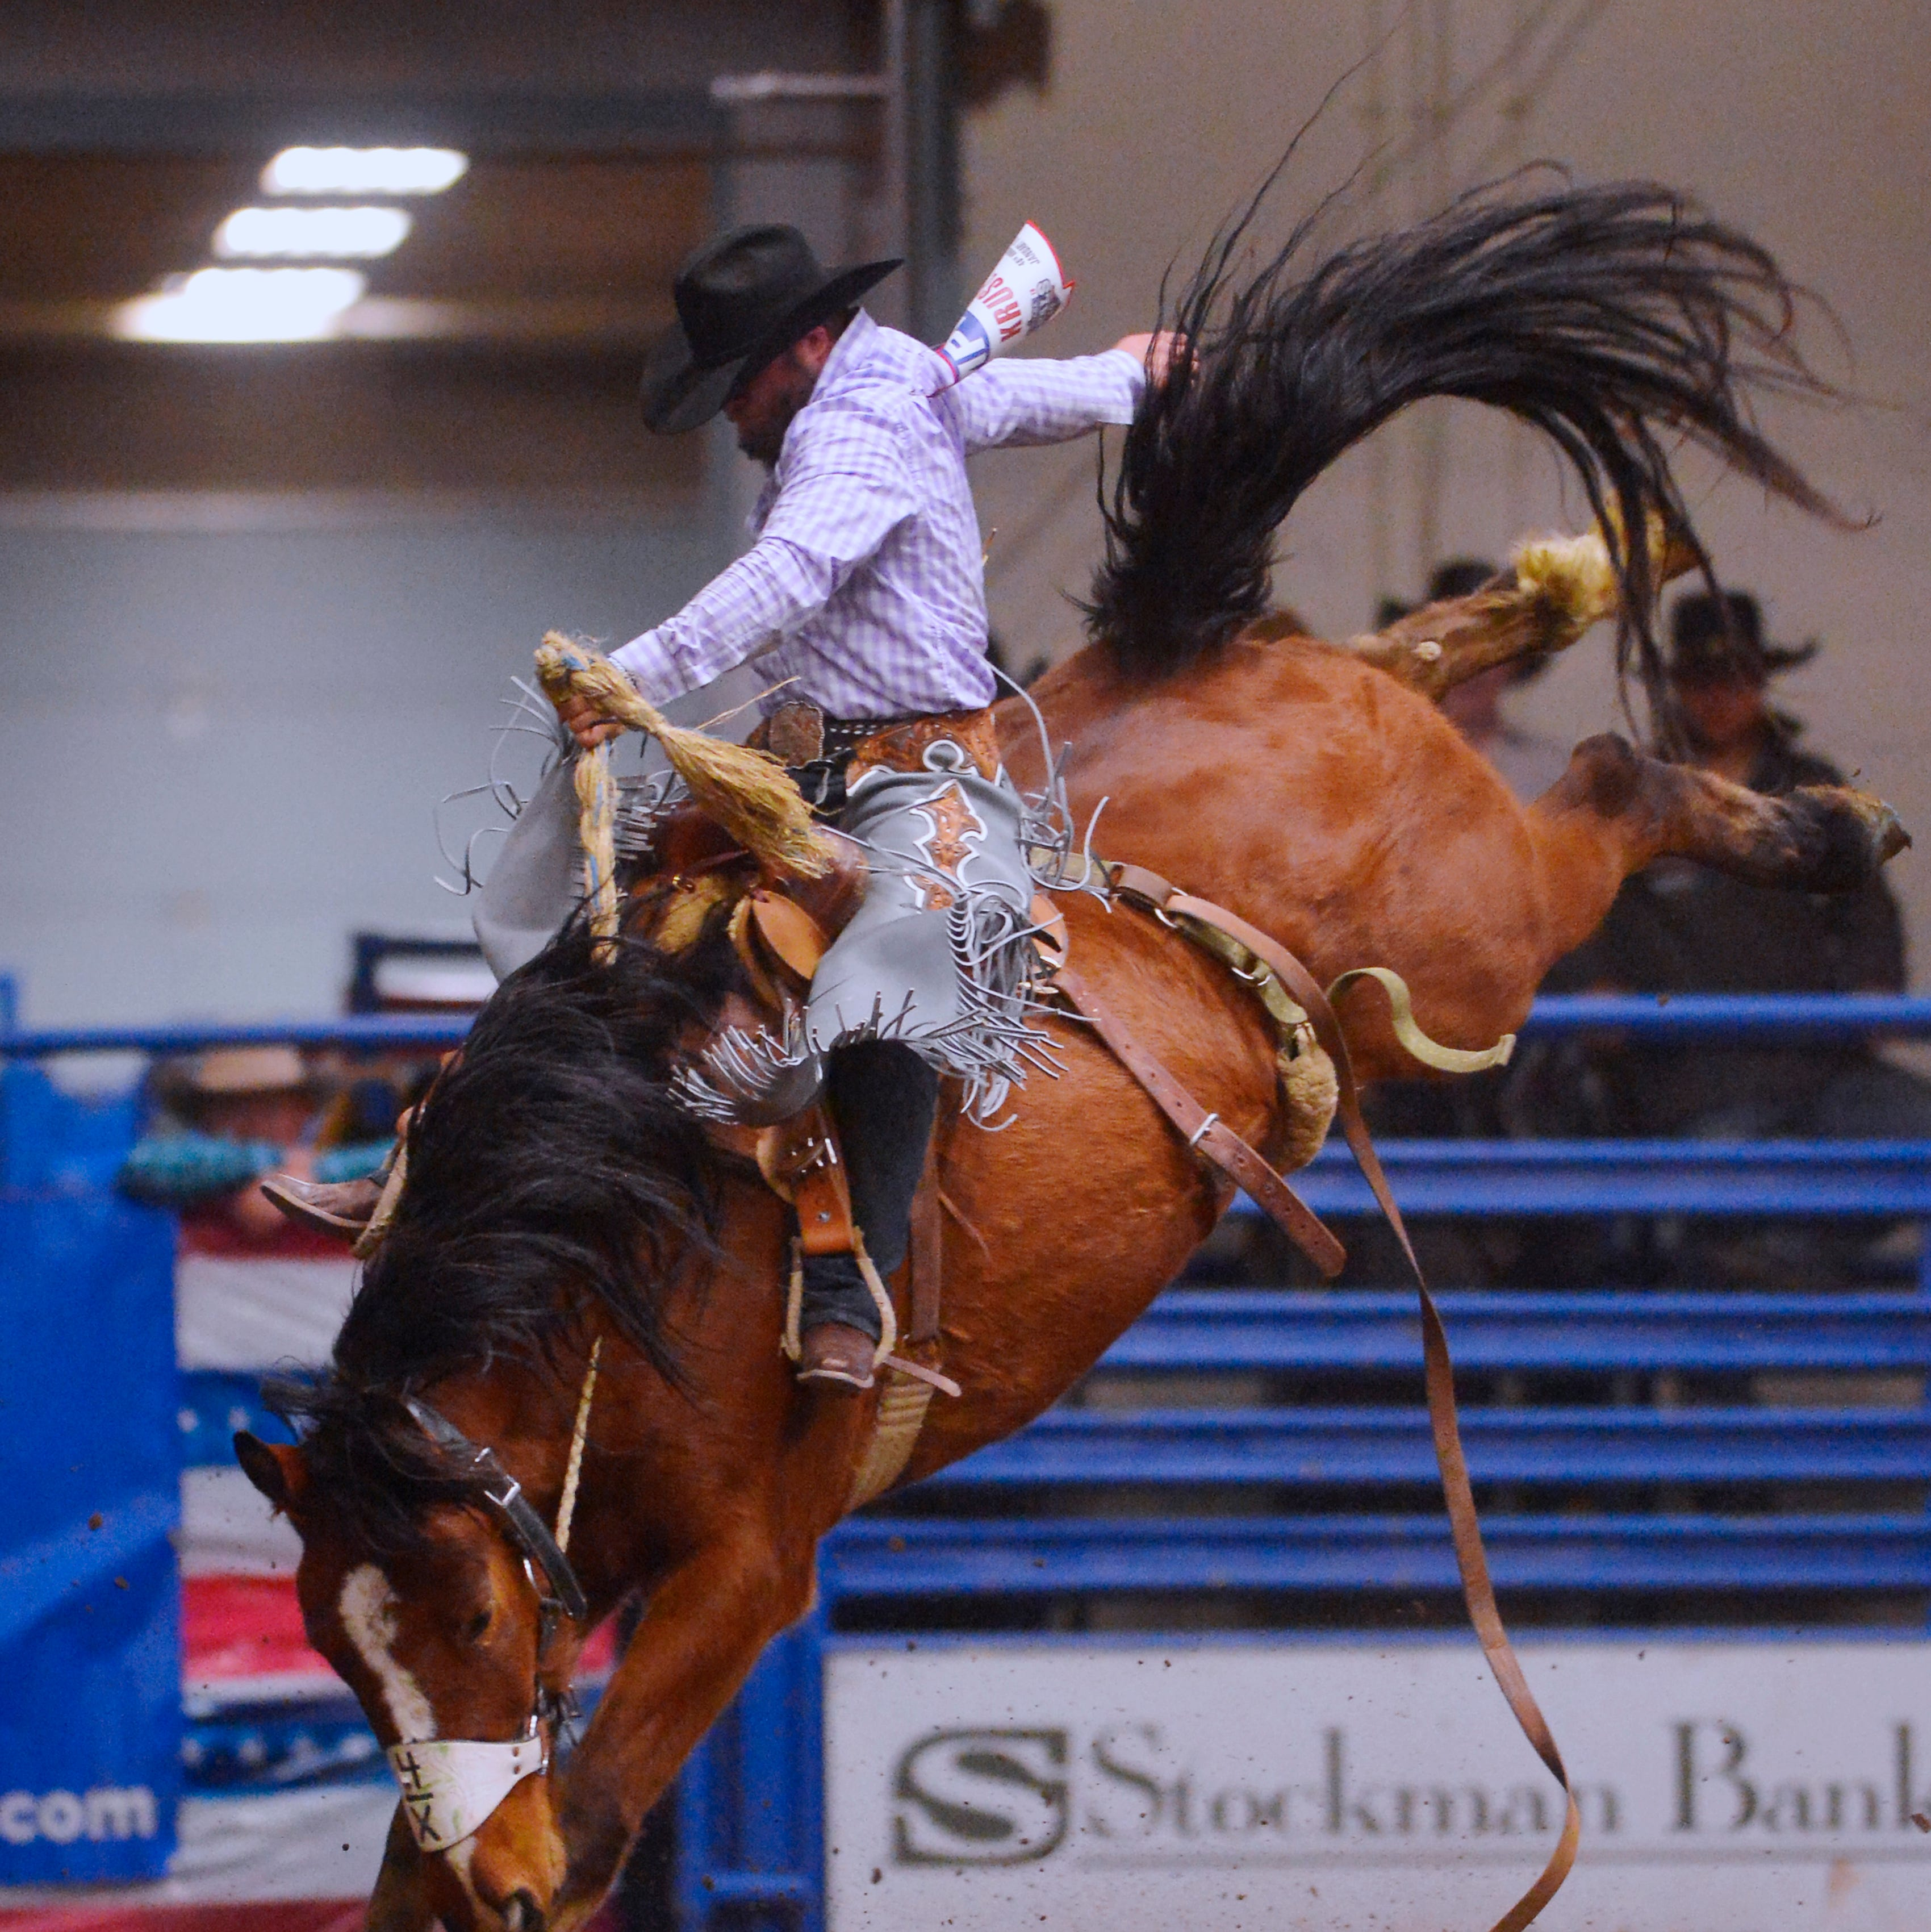 Kruse, Hollenbeck, Breding ride off with rodeo titles